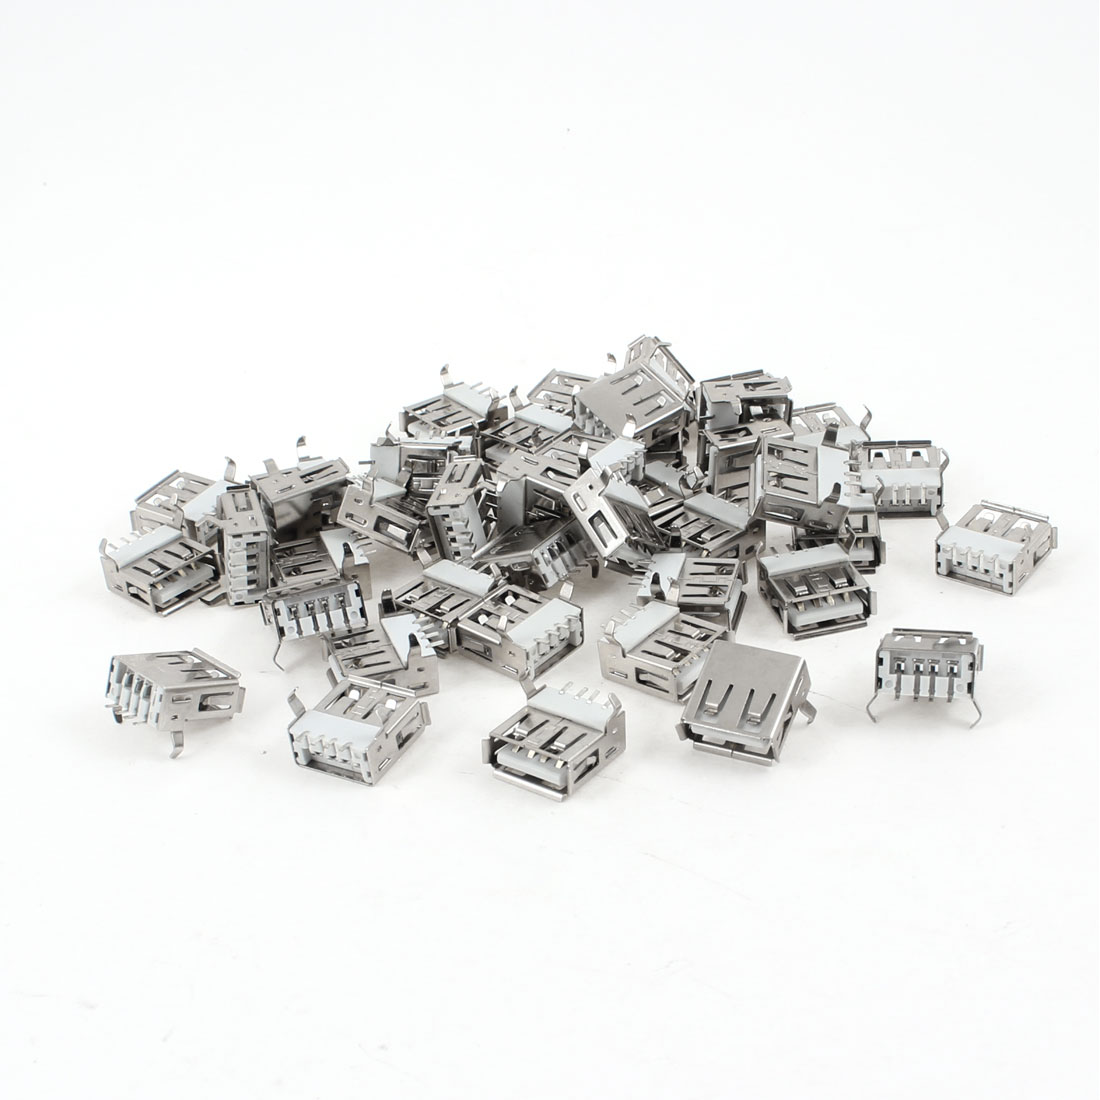 50 Pcs Shielded USB Type A 90 Degree 4-Pin SMD Female Jack Socket